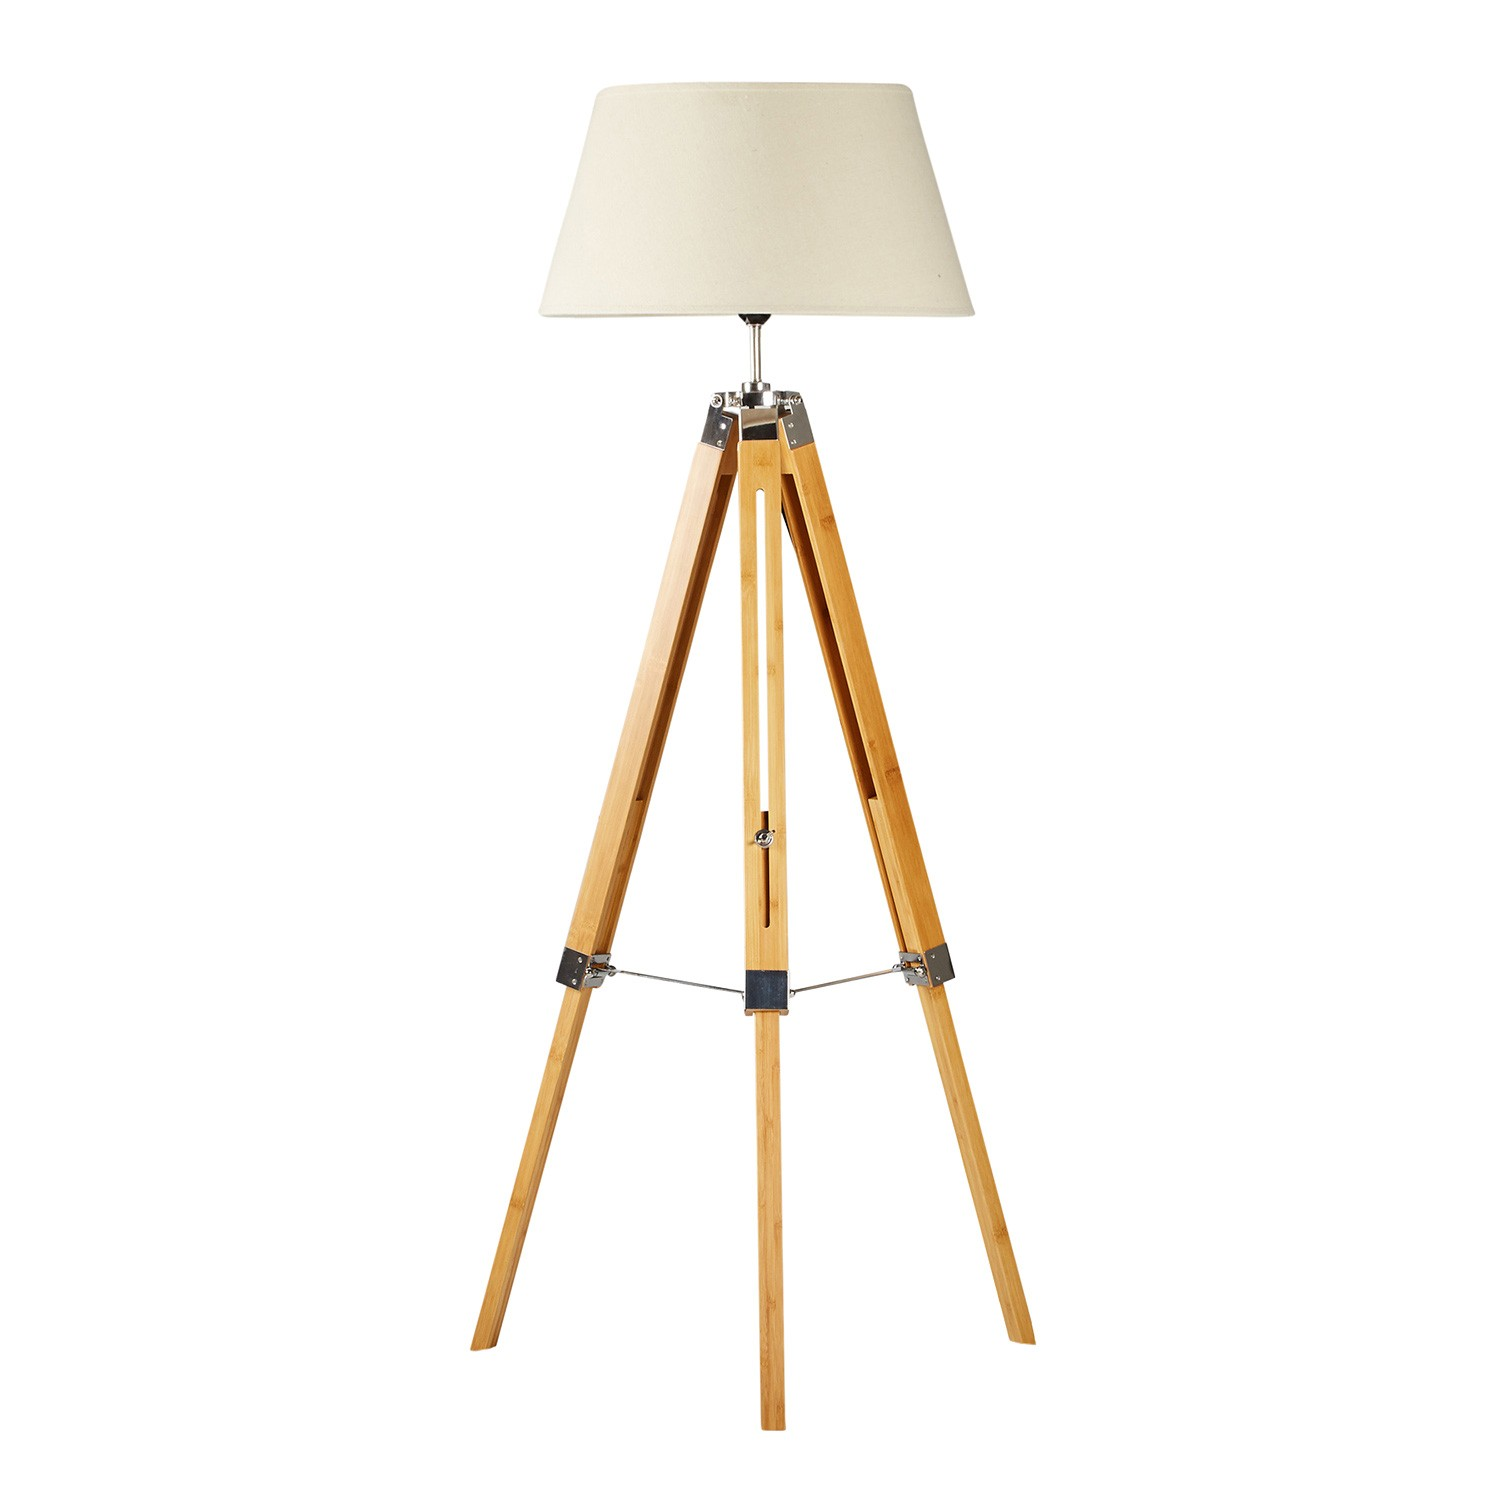 Surveyor Classic Timber Tripod Floor Lamp, Natural / Beige